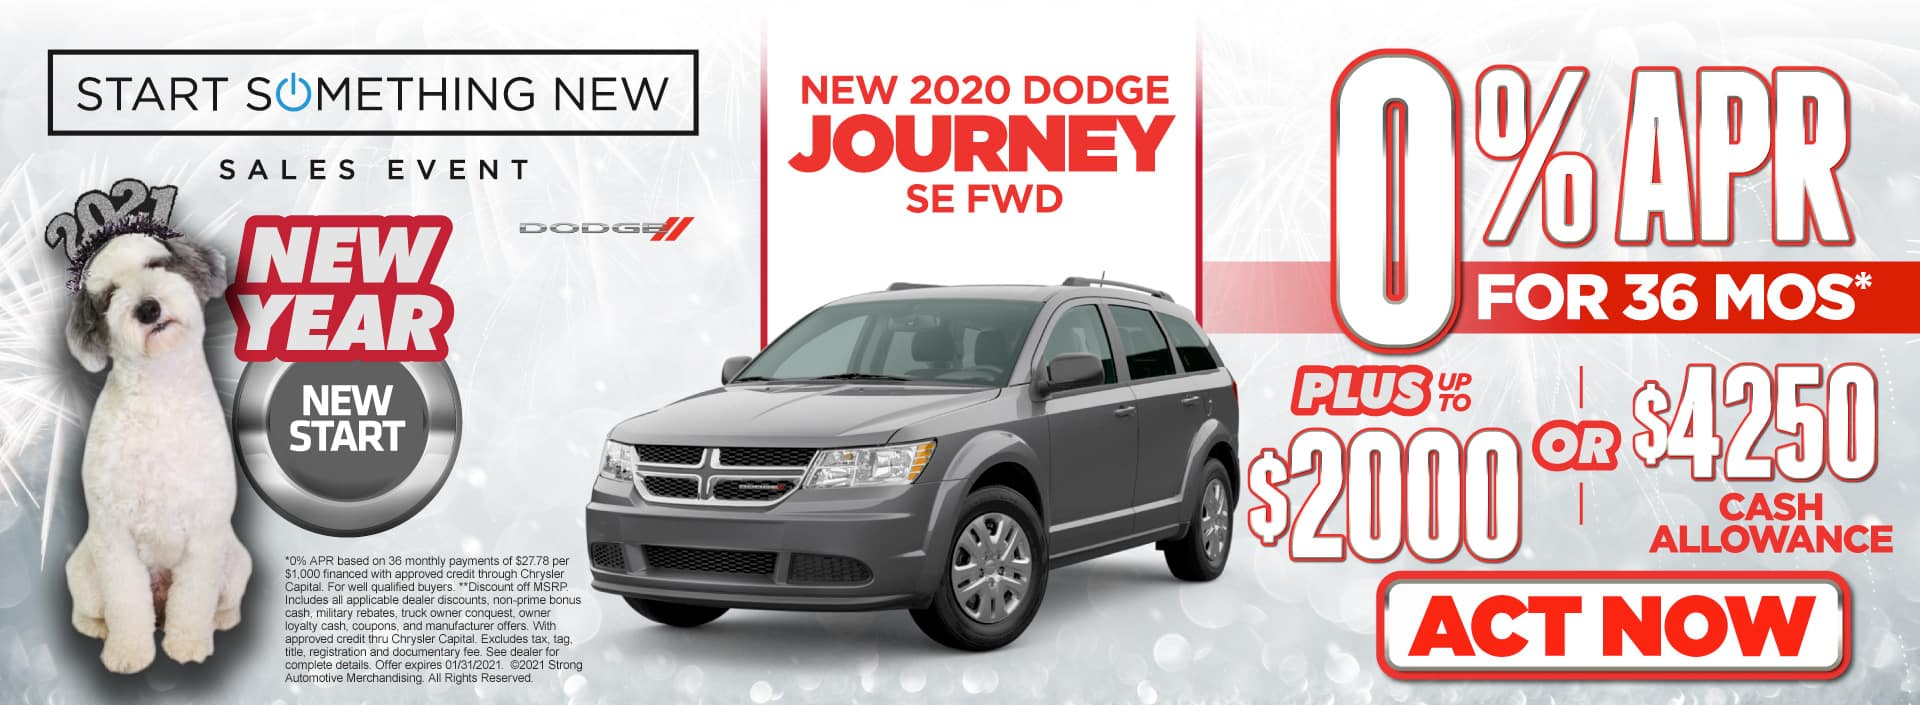 New 2020 Dodge Journey - 0% APR for 36 months